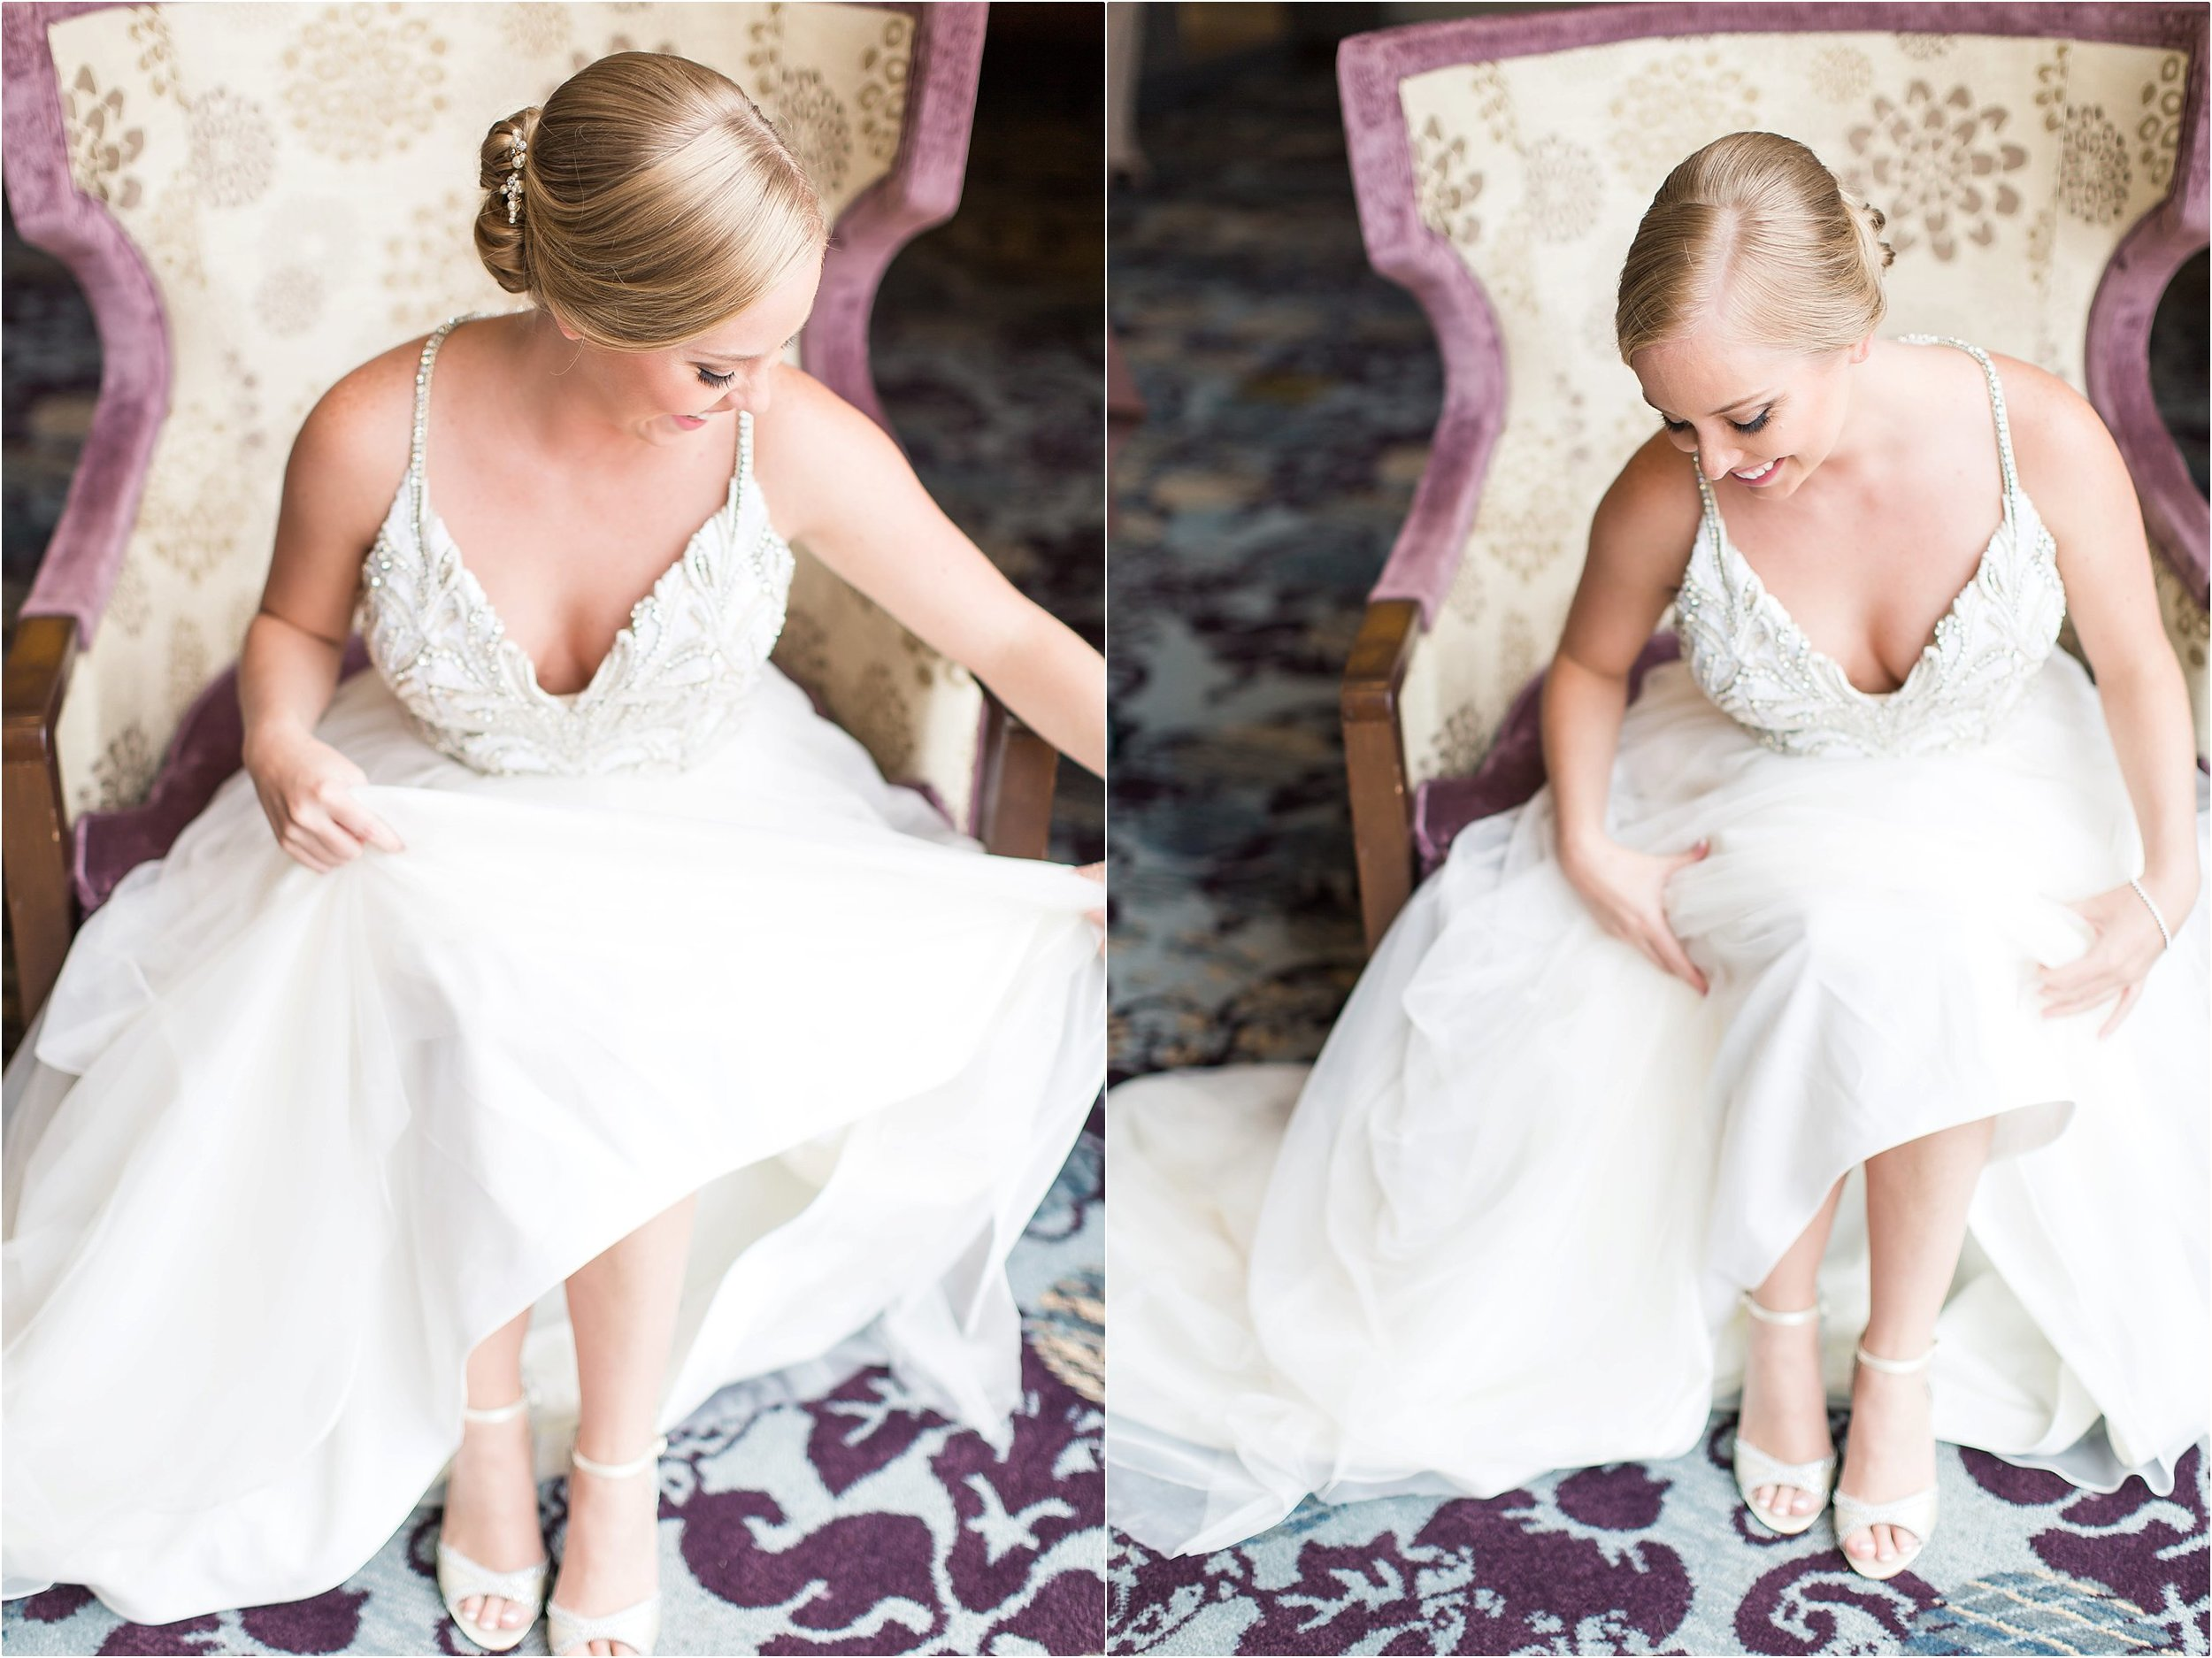 Bride Portraits Hayley Paige wedding gown getting ready moments at Bonnet Creek Wedding by PSJ Photography